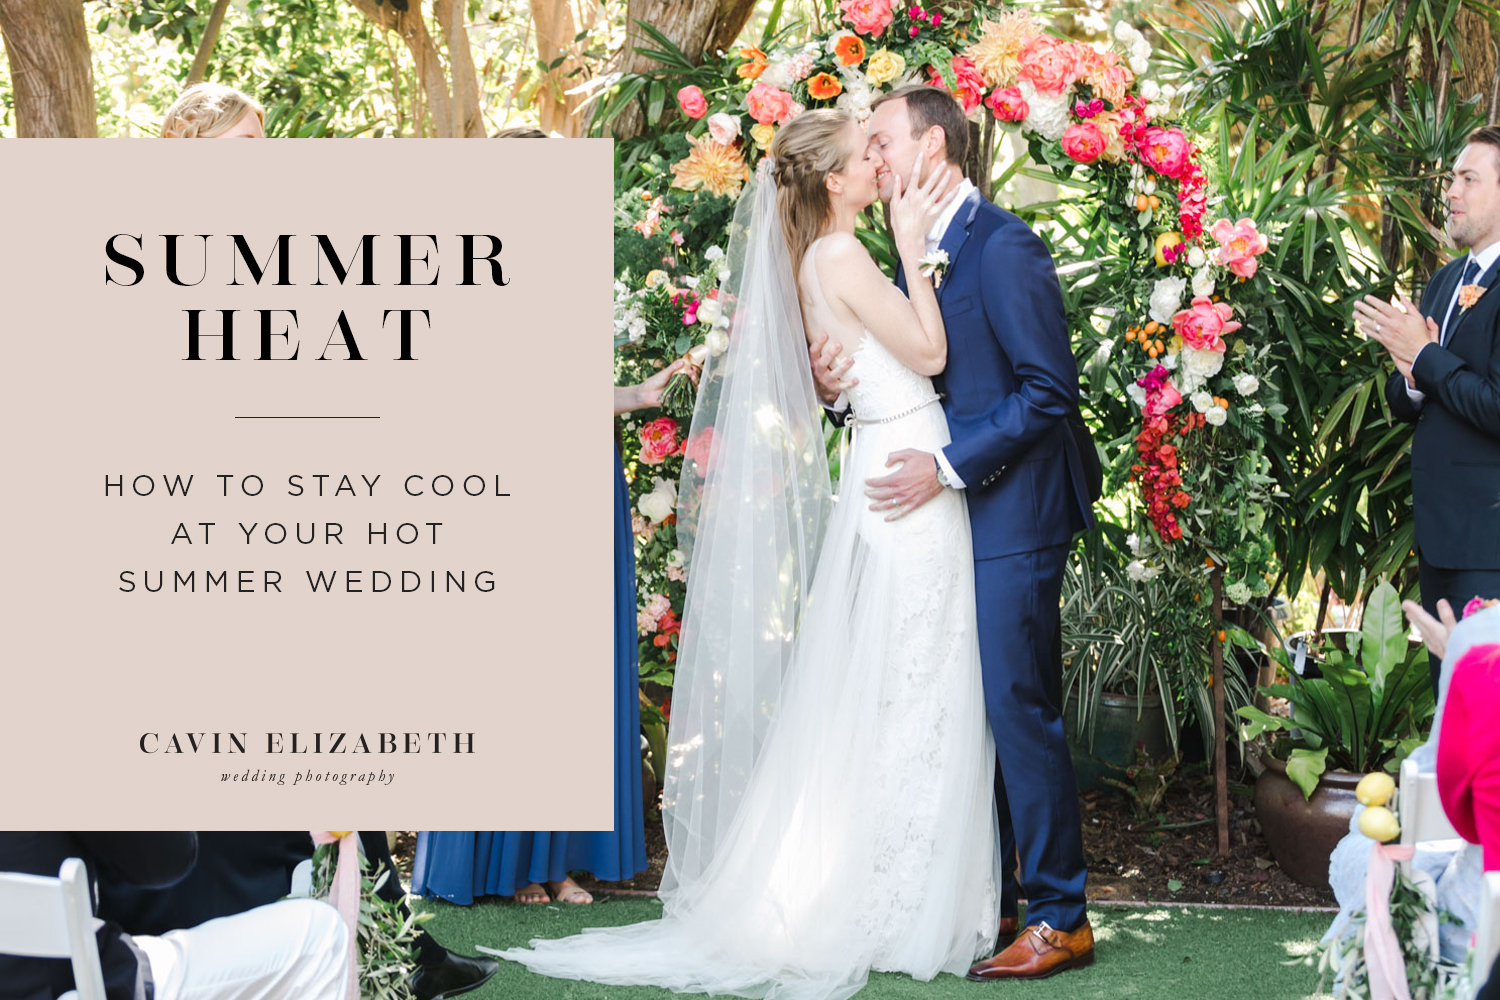 5 Tips for Staying Cool During Hot Weddings